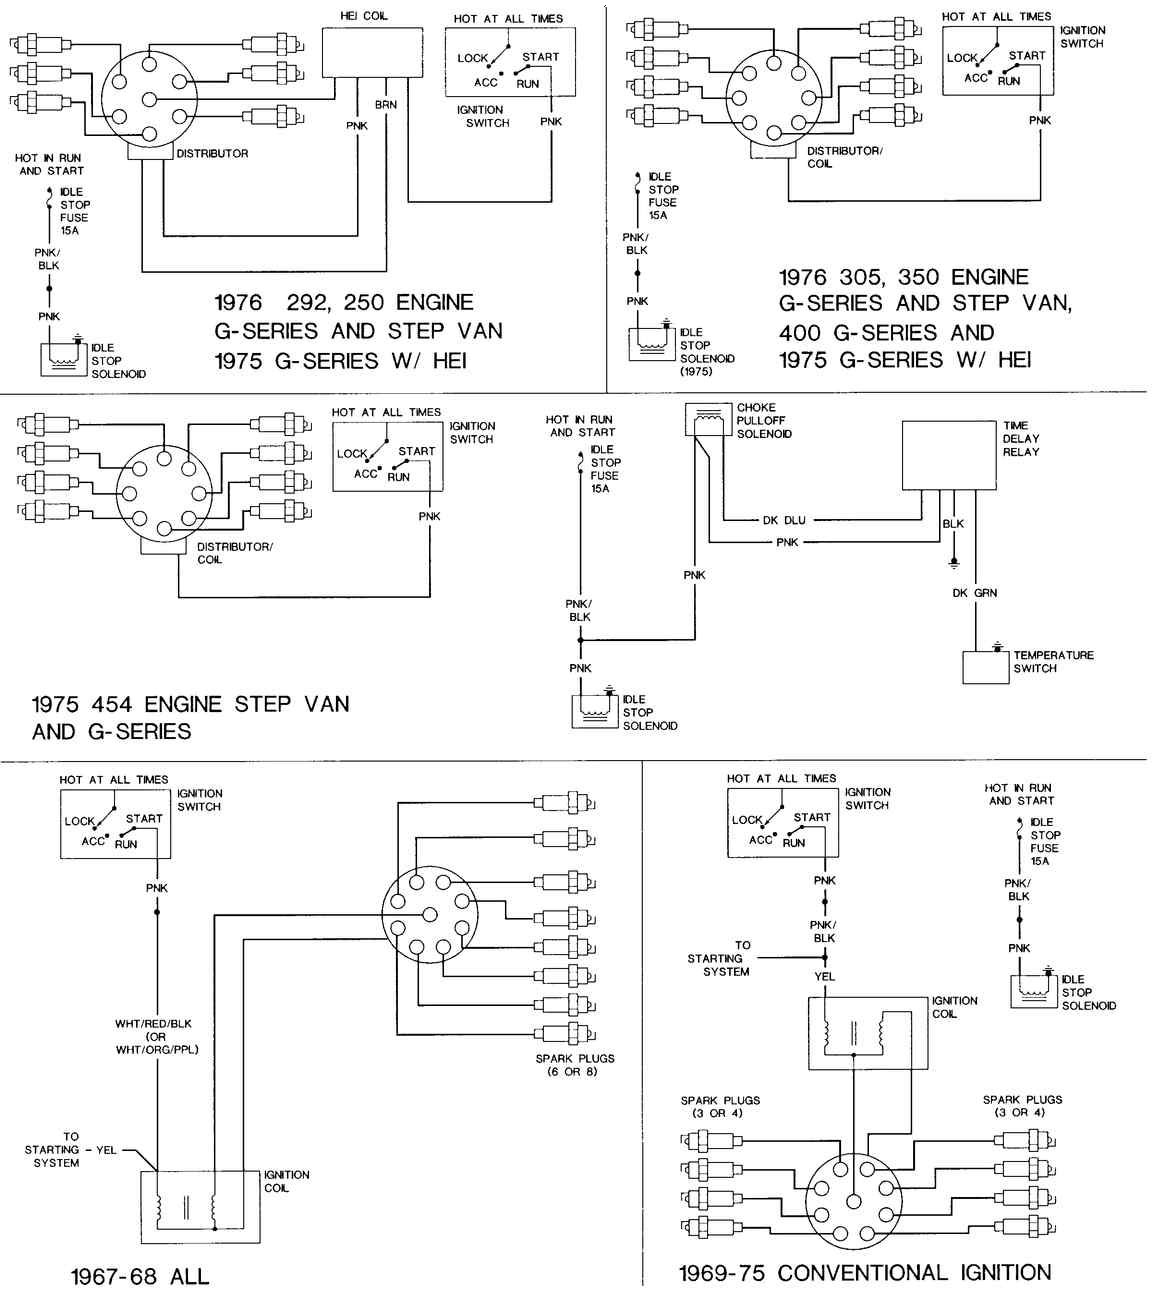 1018d1252846358 67 g10 wiring diagrams parts 89776w01l workhorse wiring diagram efcaviation com workhorse motorhome chassis wiring diagram at soozxer.org